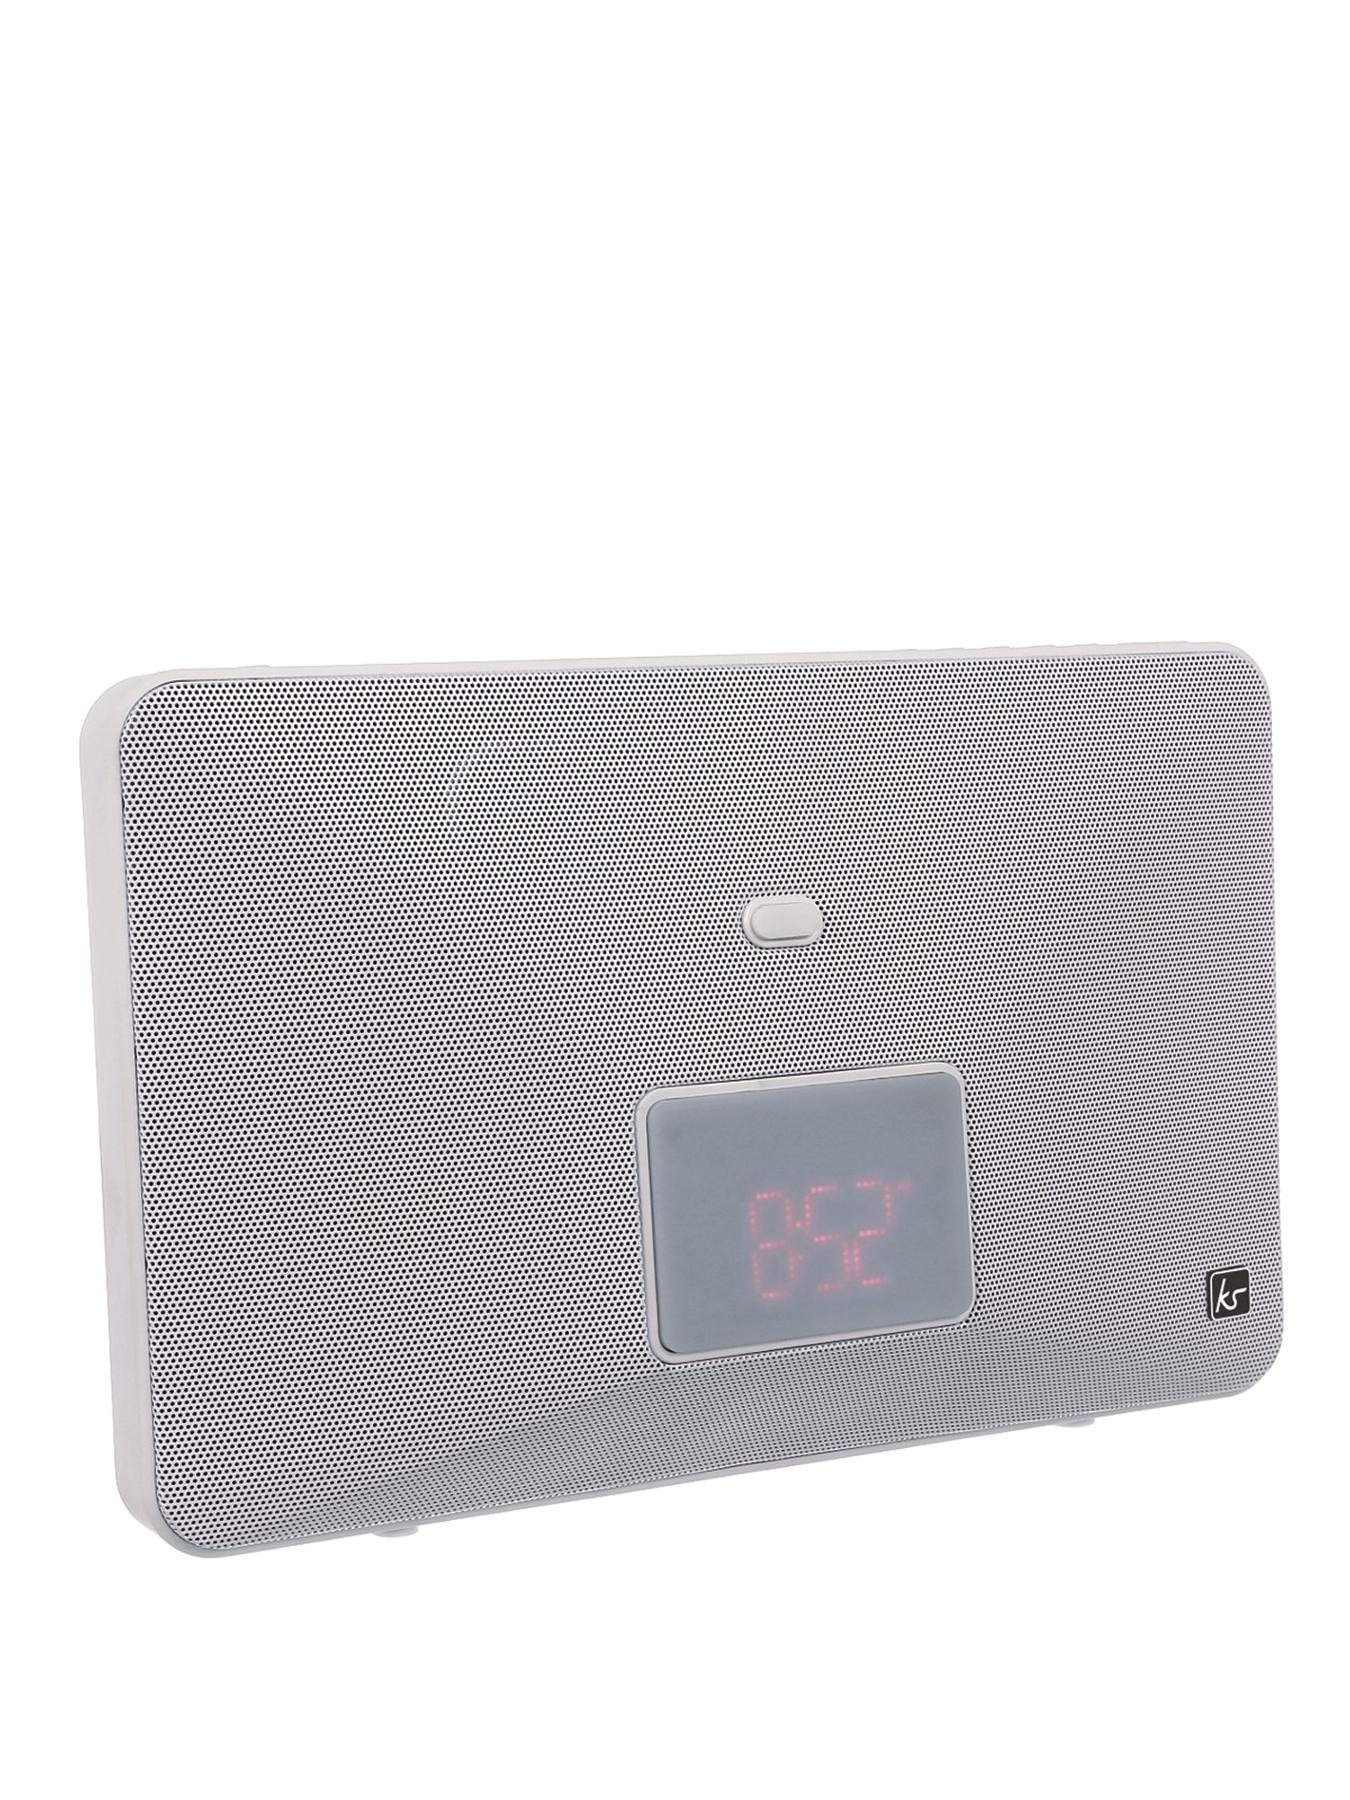 Fresh 8 Pin Lightning Clock Radio Speaker Docking Station - White